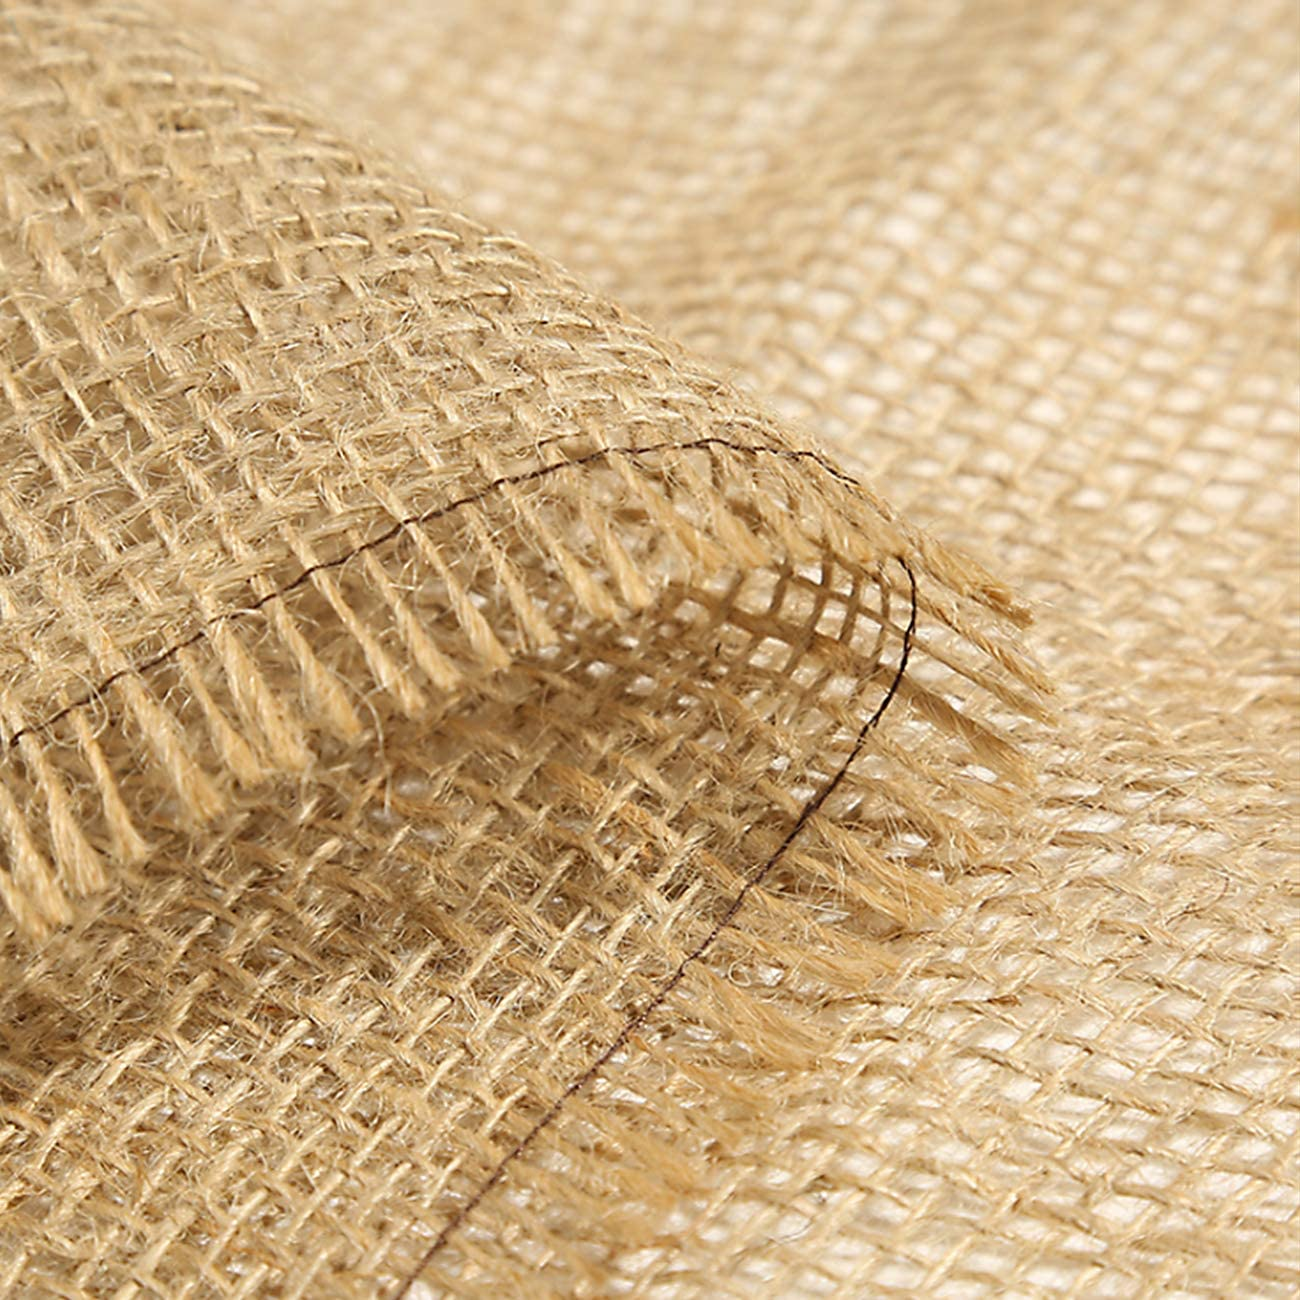 Natural Burlap Fabric, 62 Wide X 16FT, NO-FRAY Burlap Roll-Long Fabric with Finished Edges- Suitable for DIY, Weddings, Tree Wraps for Winter, Table Runners, Placemat, Crafts, and Animal Bites